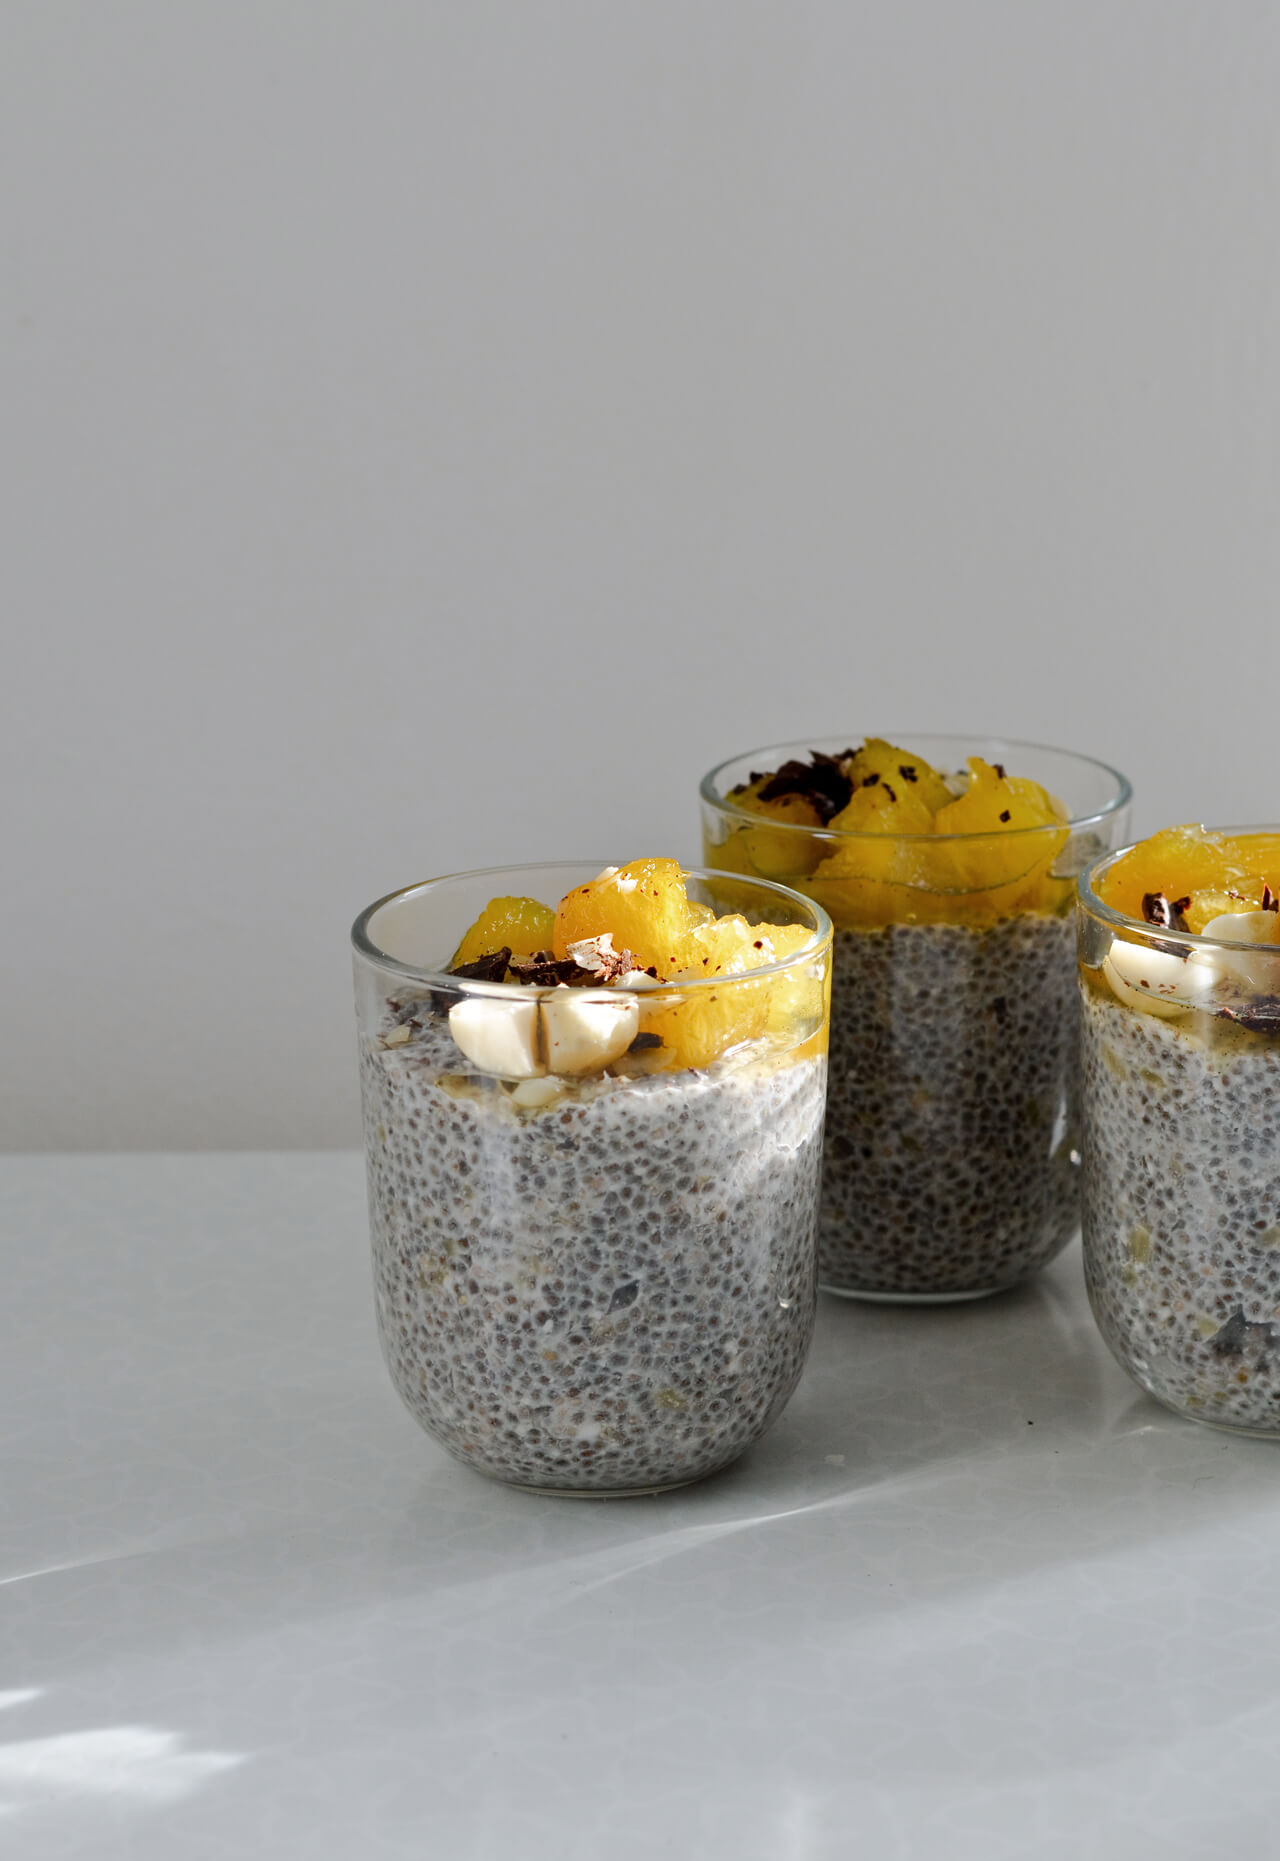 banana coconut chia pudding with pineapple, chocolate, macadamia